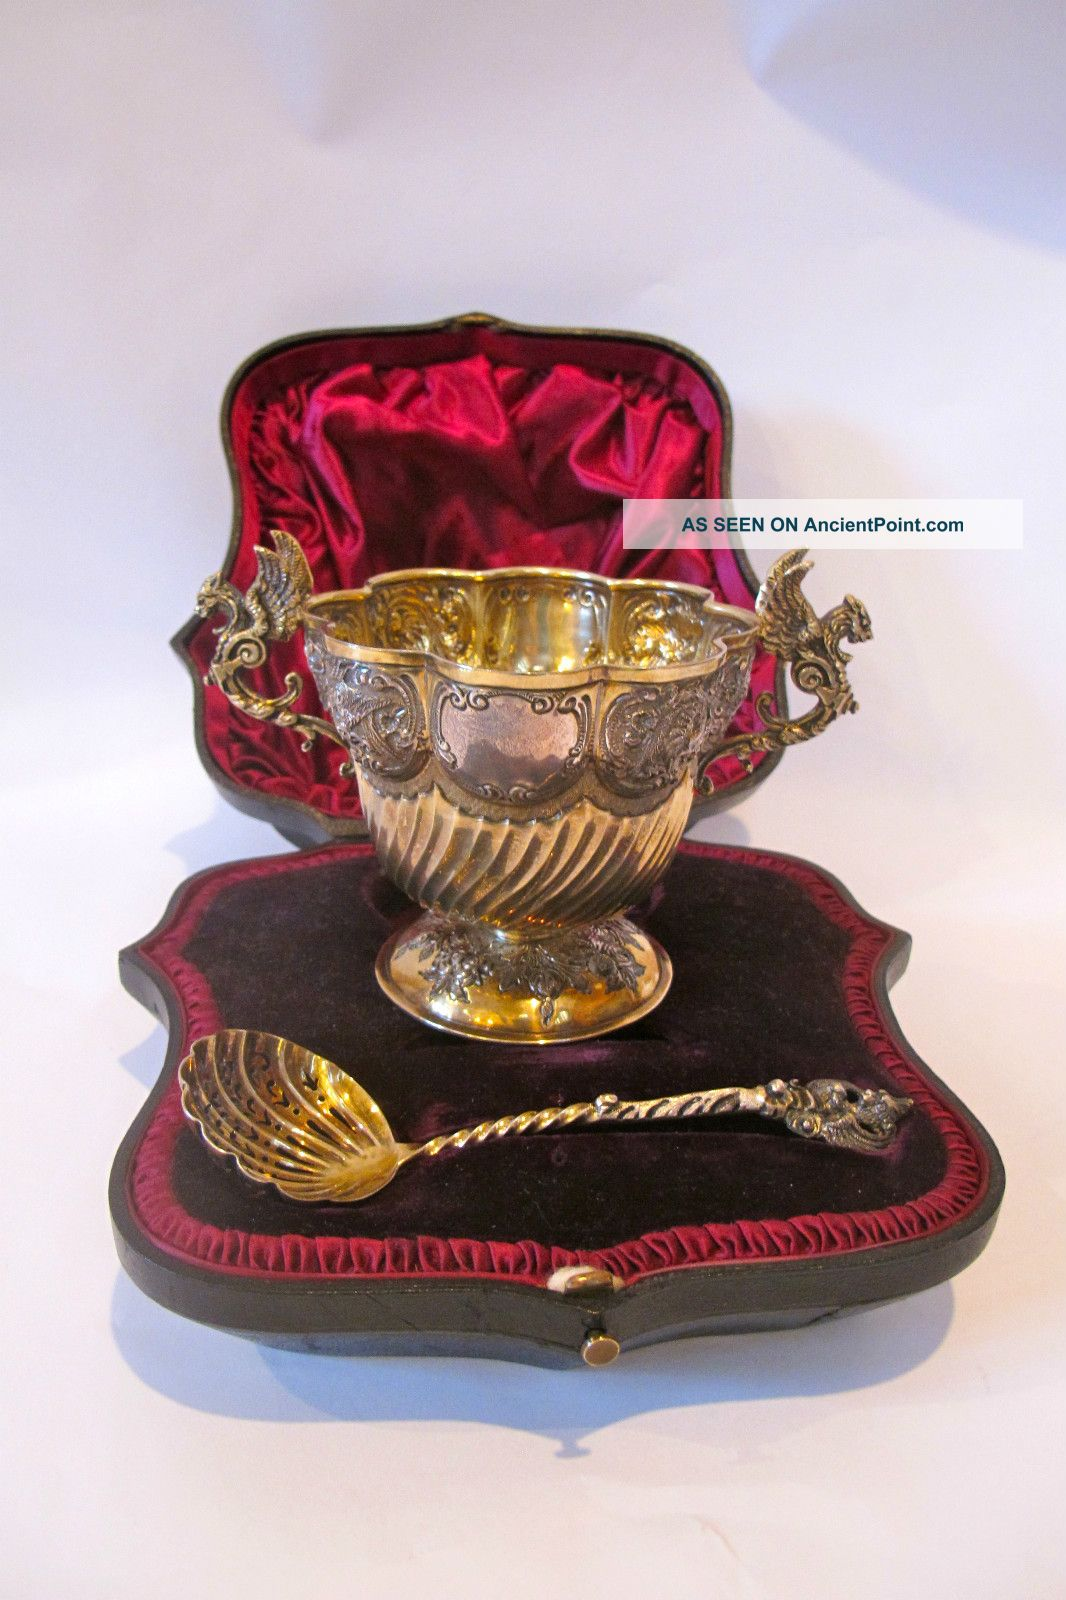 From 1870 English Sterling Silver Presentation Bowl In Box,  Gilded. United Kingdom photo